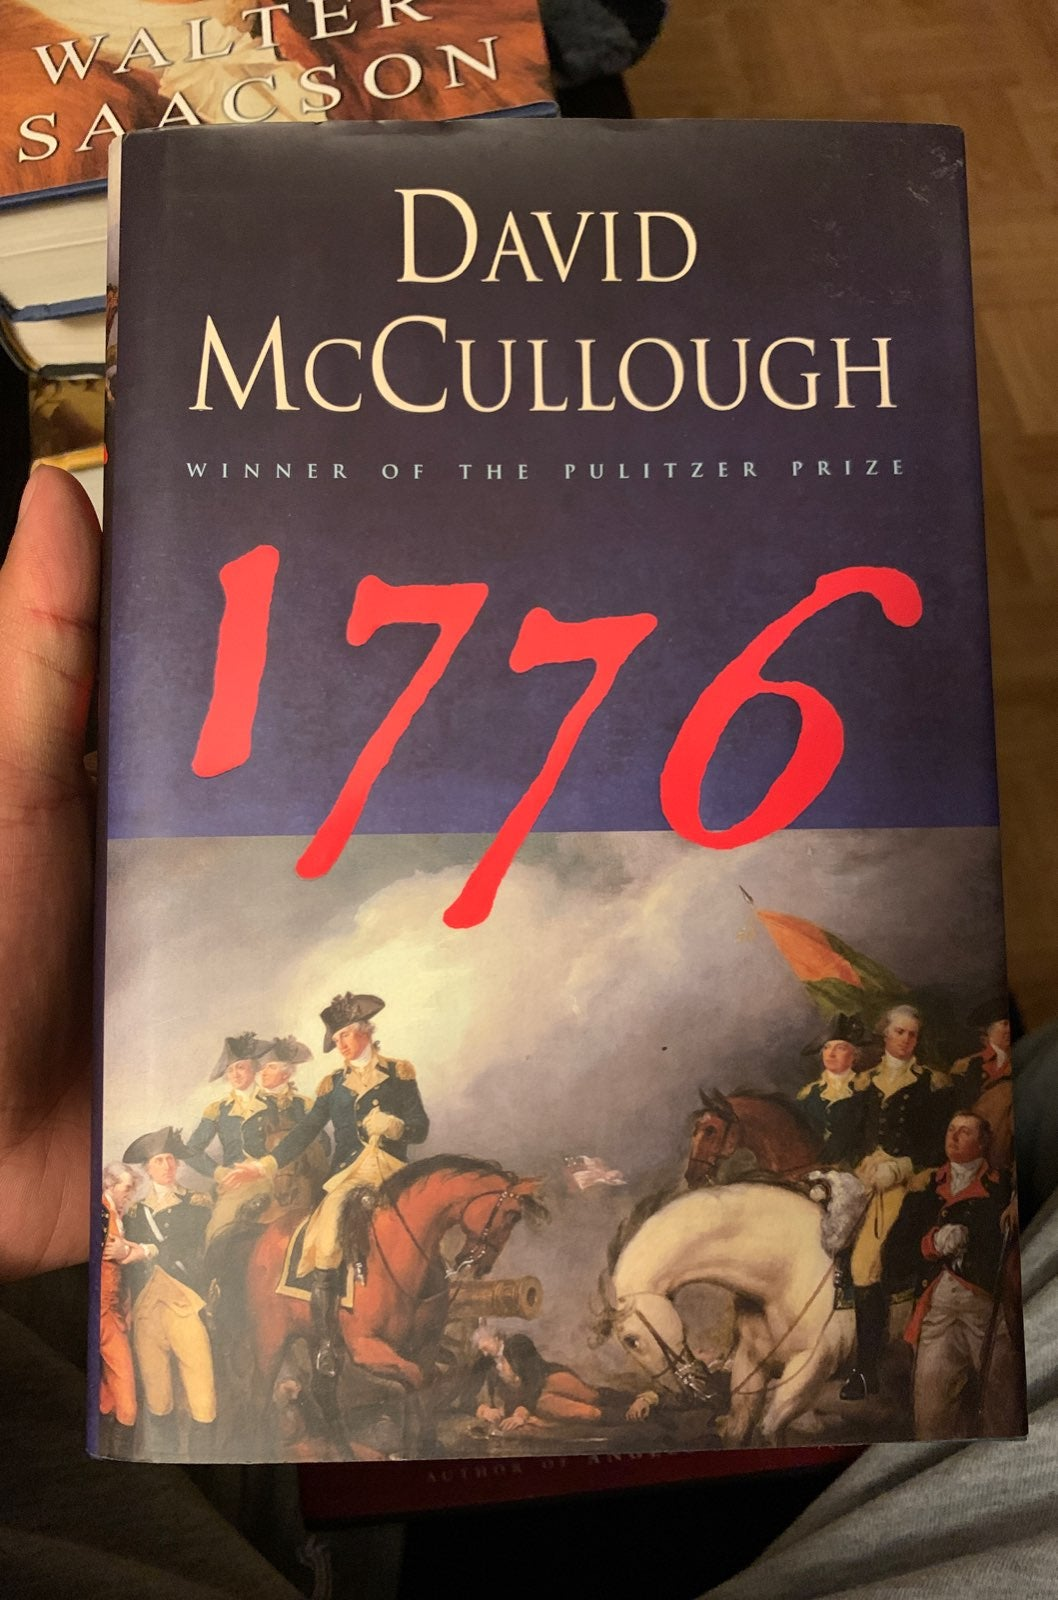 1776 hard cover book by david mccullough